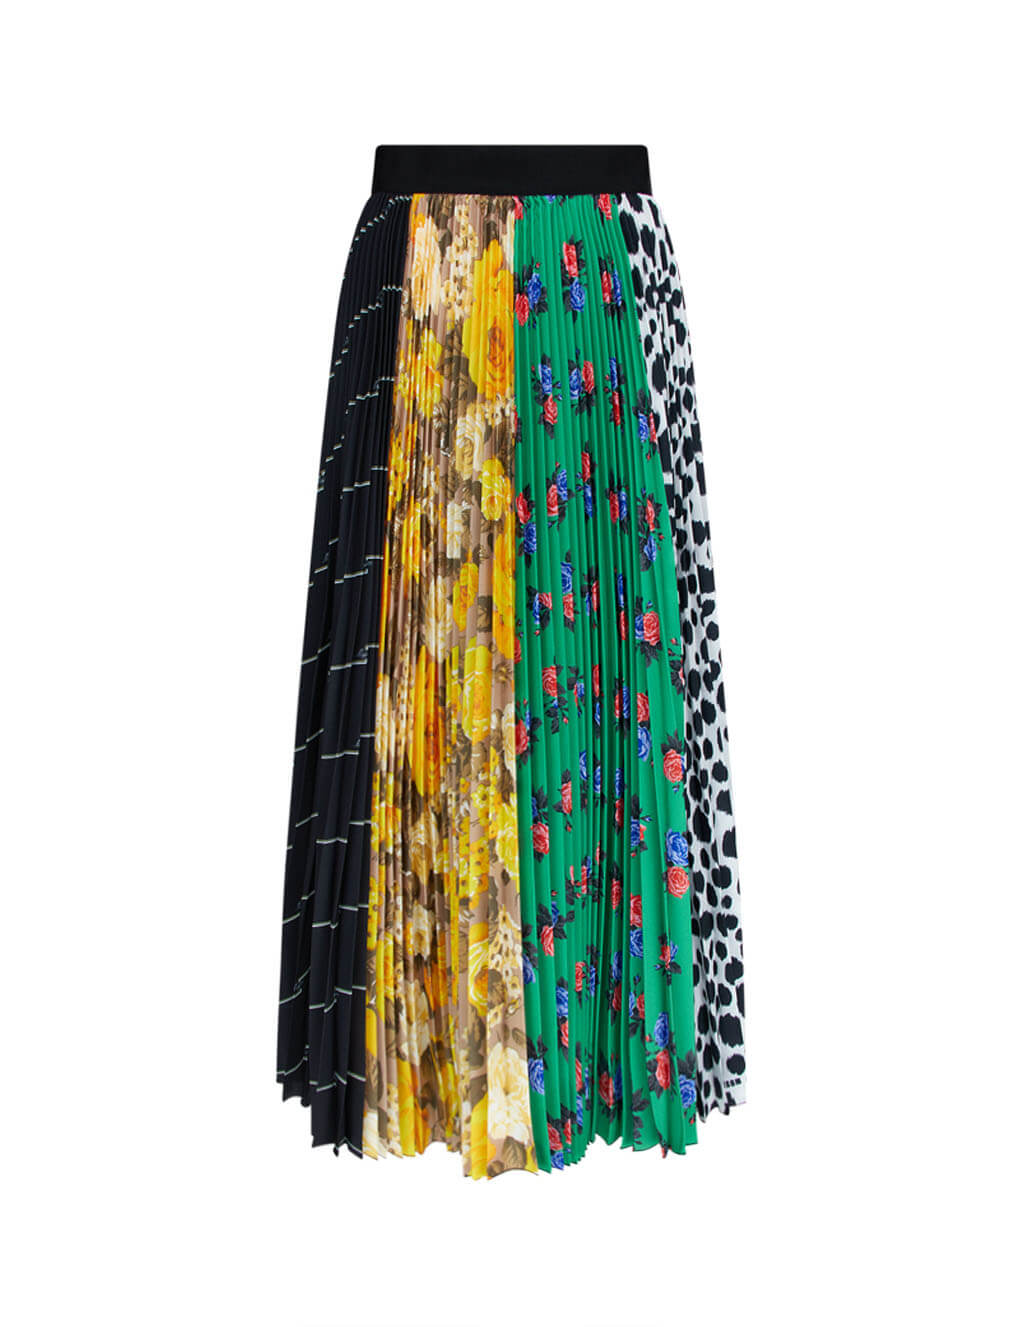 Women's MSGM Multi Pattern Skirt in Multicolour. 2941MDD27P 207778 03